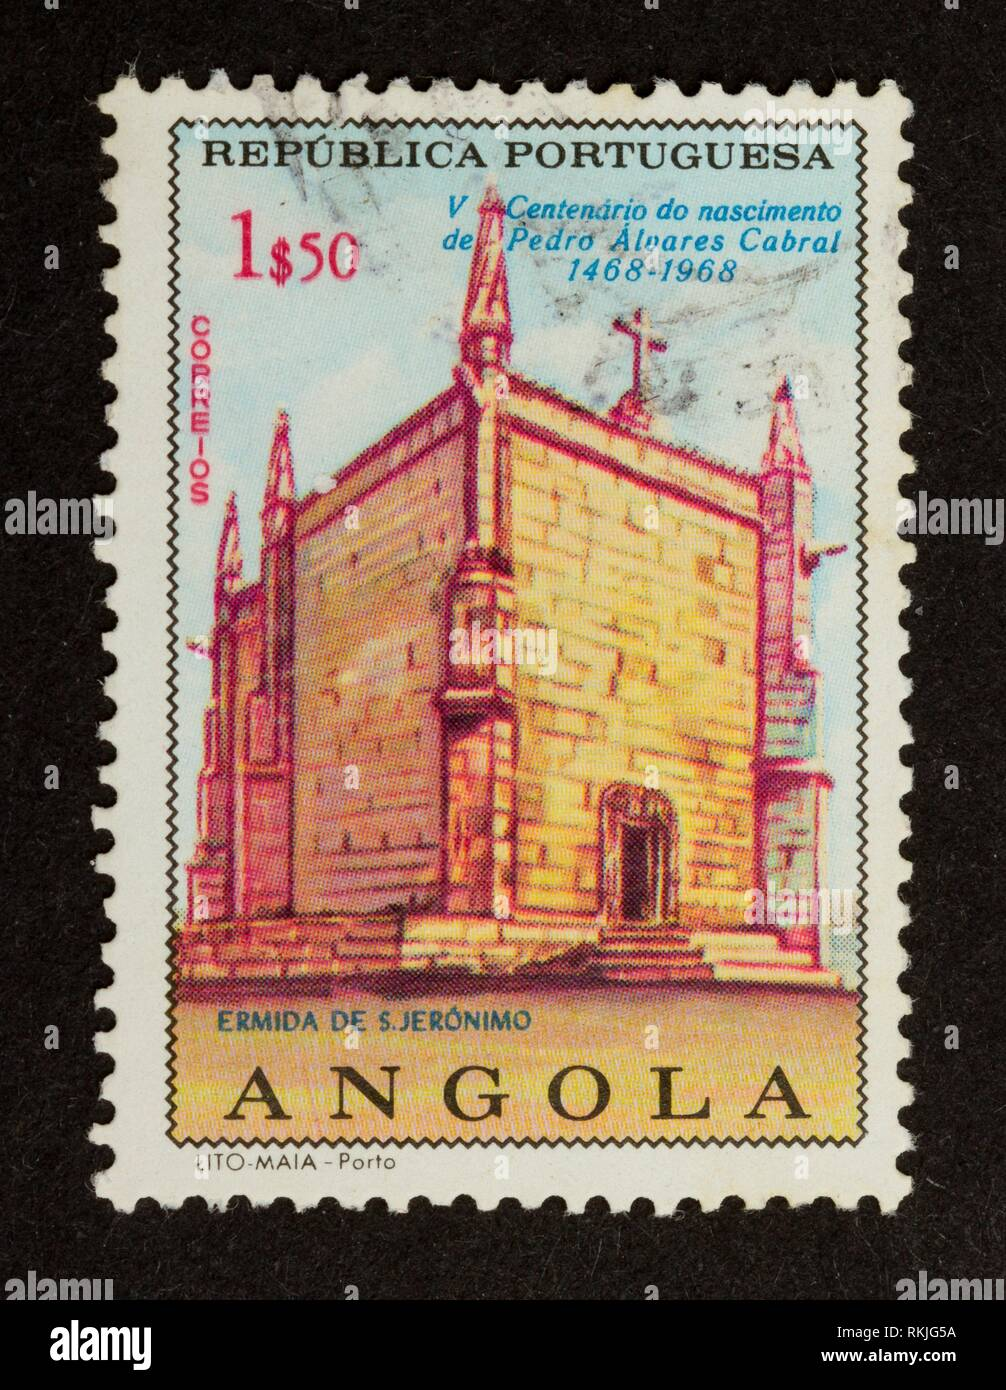 ANGOLA - 1968: Stamp printed in Angola shows an old building, 1968. - Stock Image